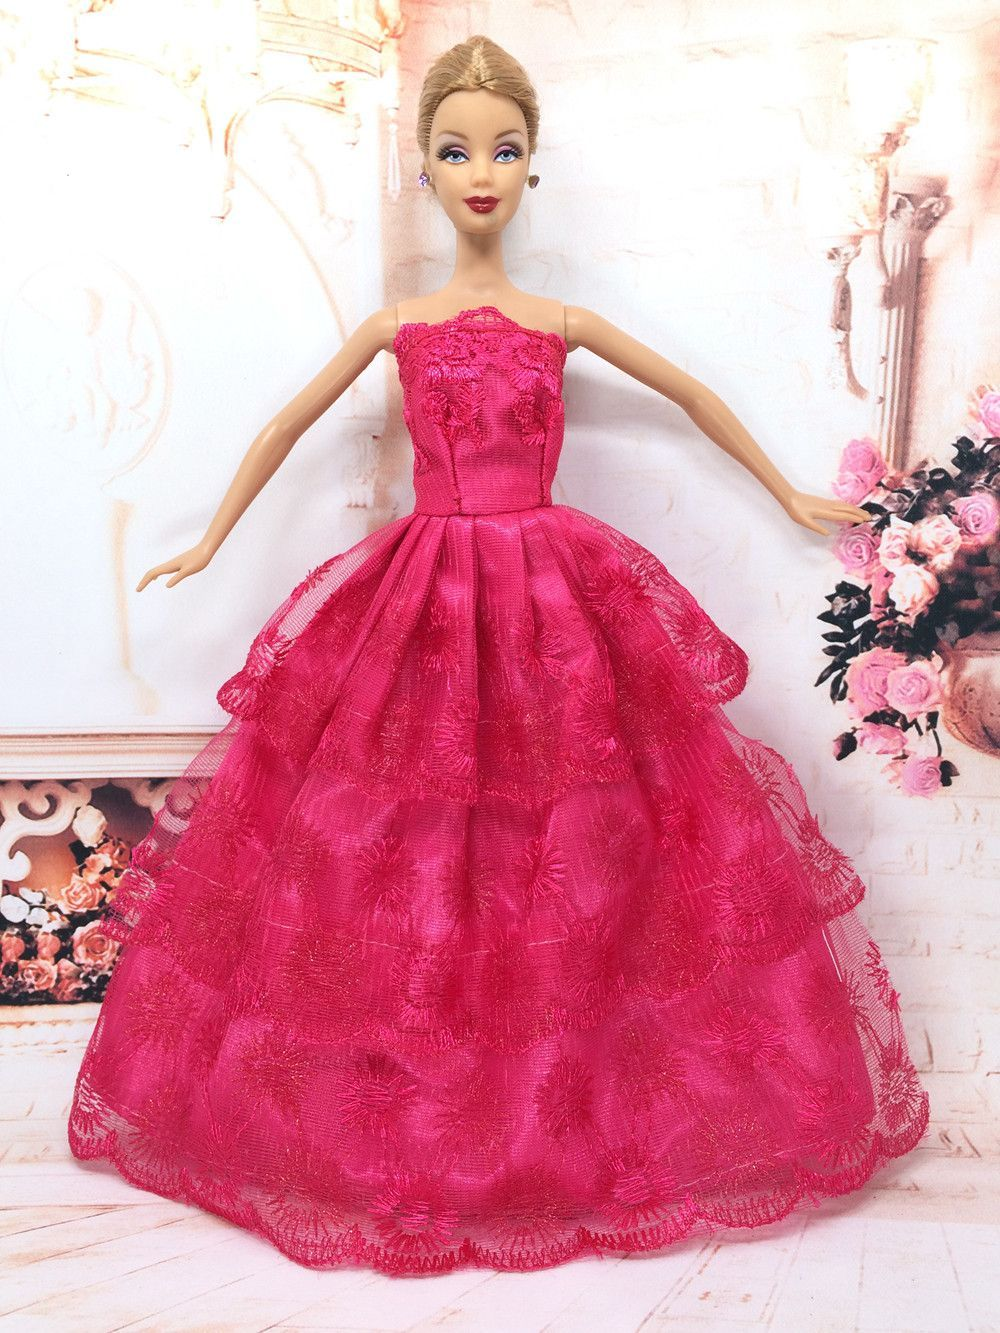 Princess Doll Wedding Dress Noble Party Gown For Barbie Doll Fashion Design  Outfit d3fd4fcac0e2